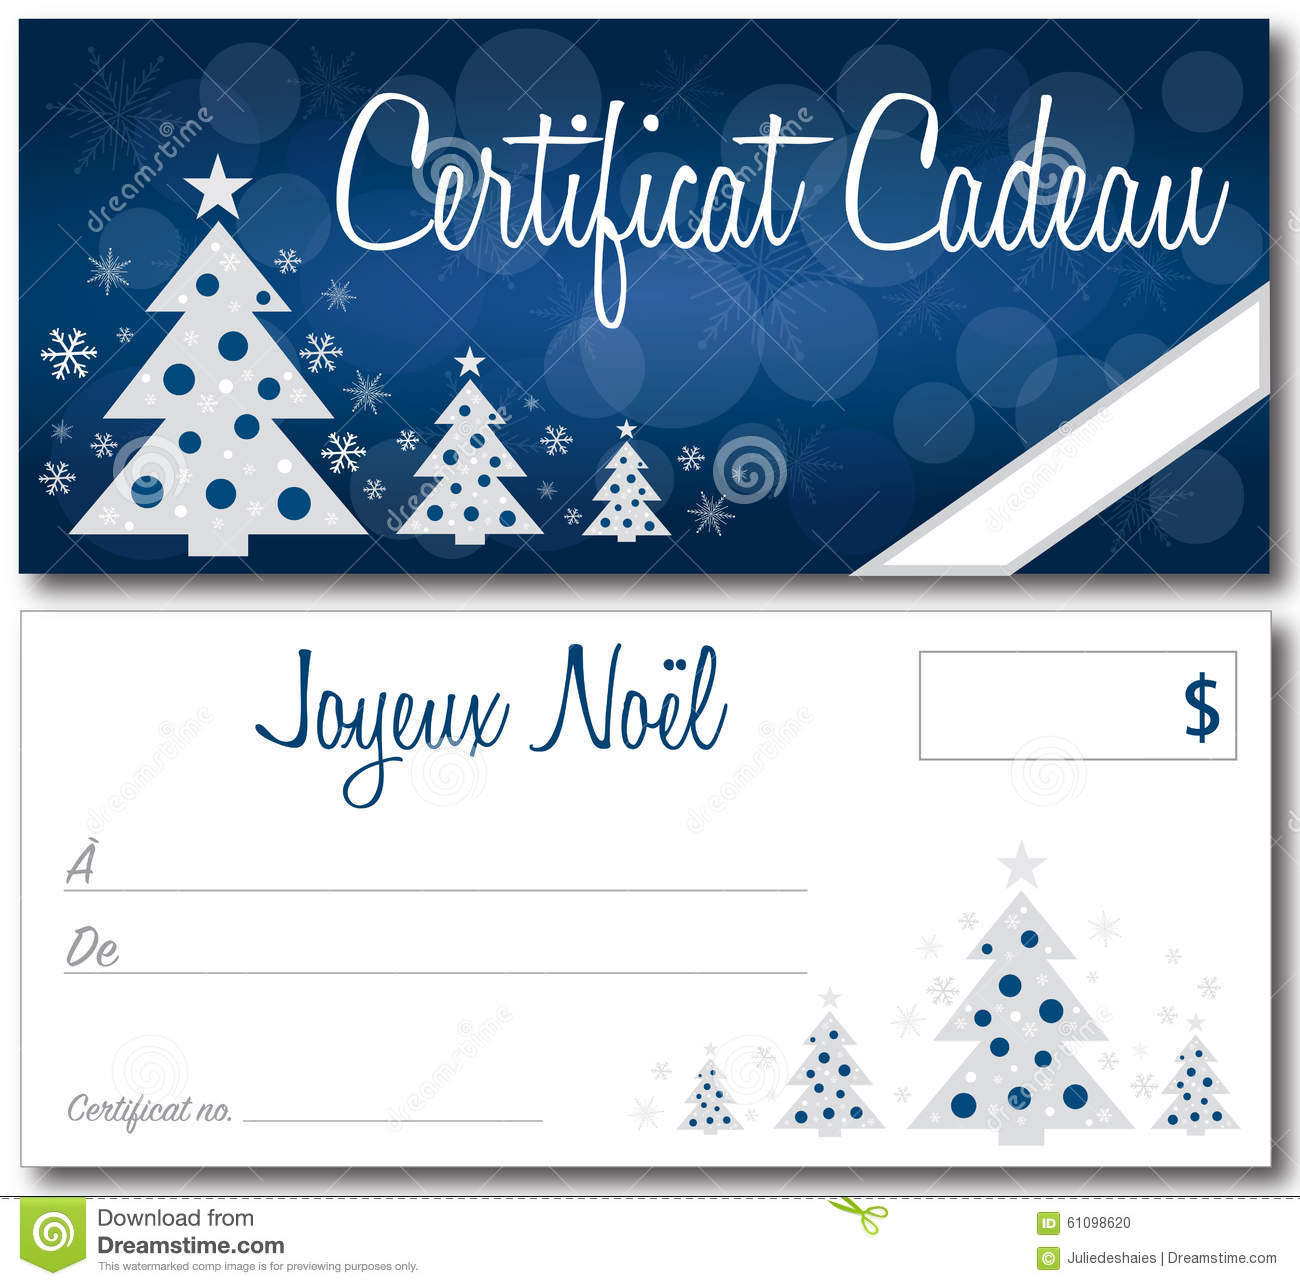 french christmas gift certificate stock vector image  french christmas gift certificate